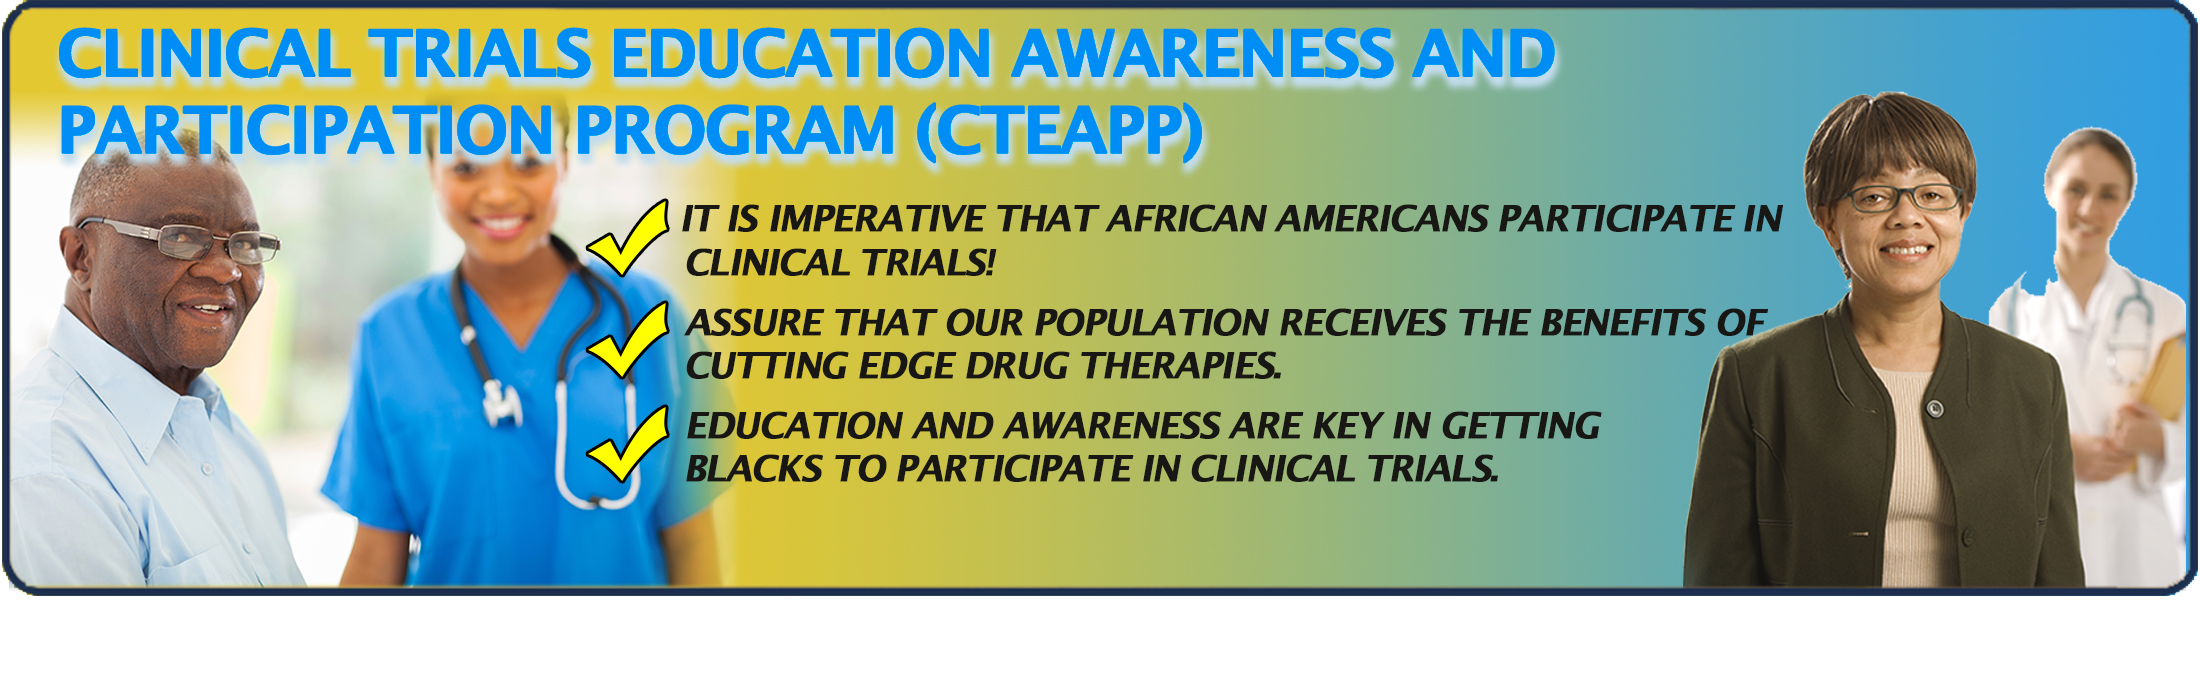 The NBCI Clinical Trials Education Awareness Participation Program (CTEAPP) is another groundbreaking initiative, housed under NBCI's Health Emergency Declaration (HED)